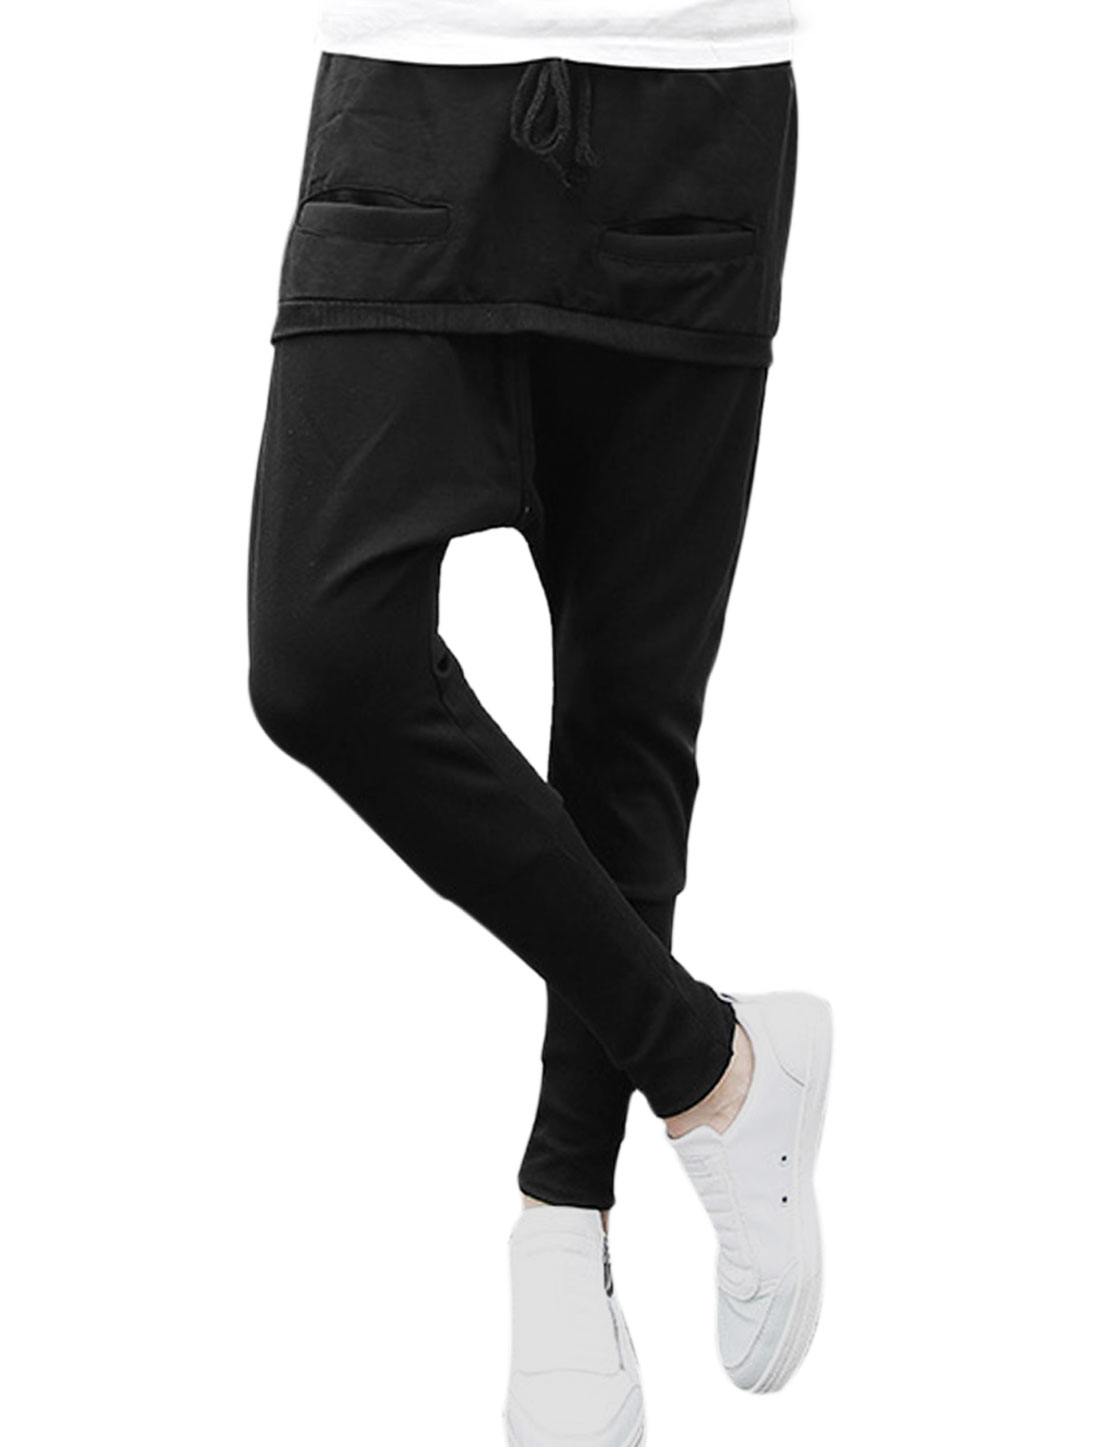 Men Drawstring Waist Spliced Low Crotch Loose Casual Harem Pants Black W30